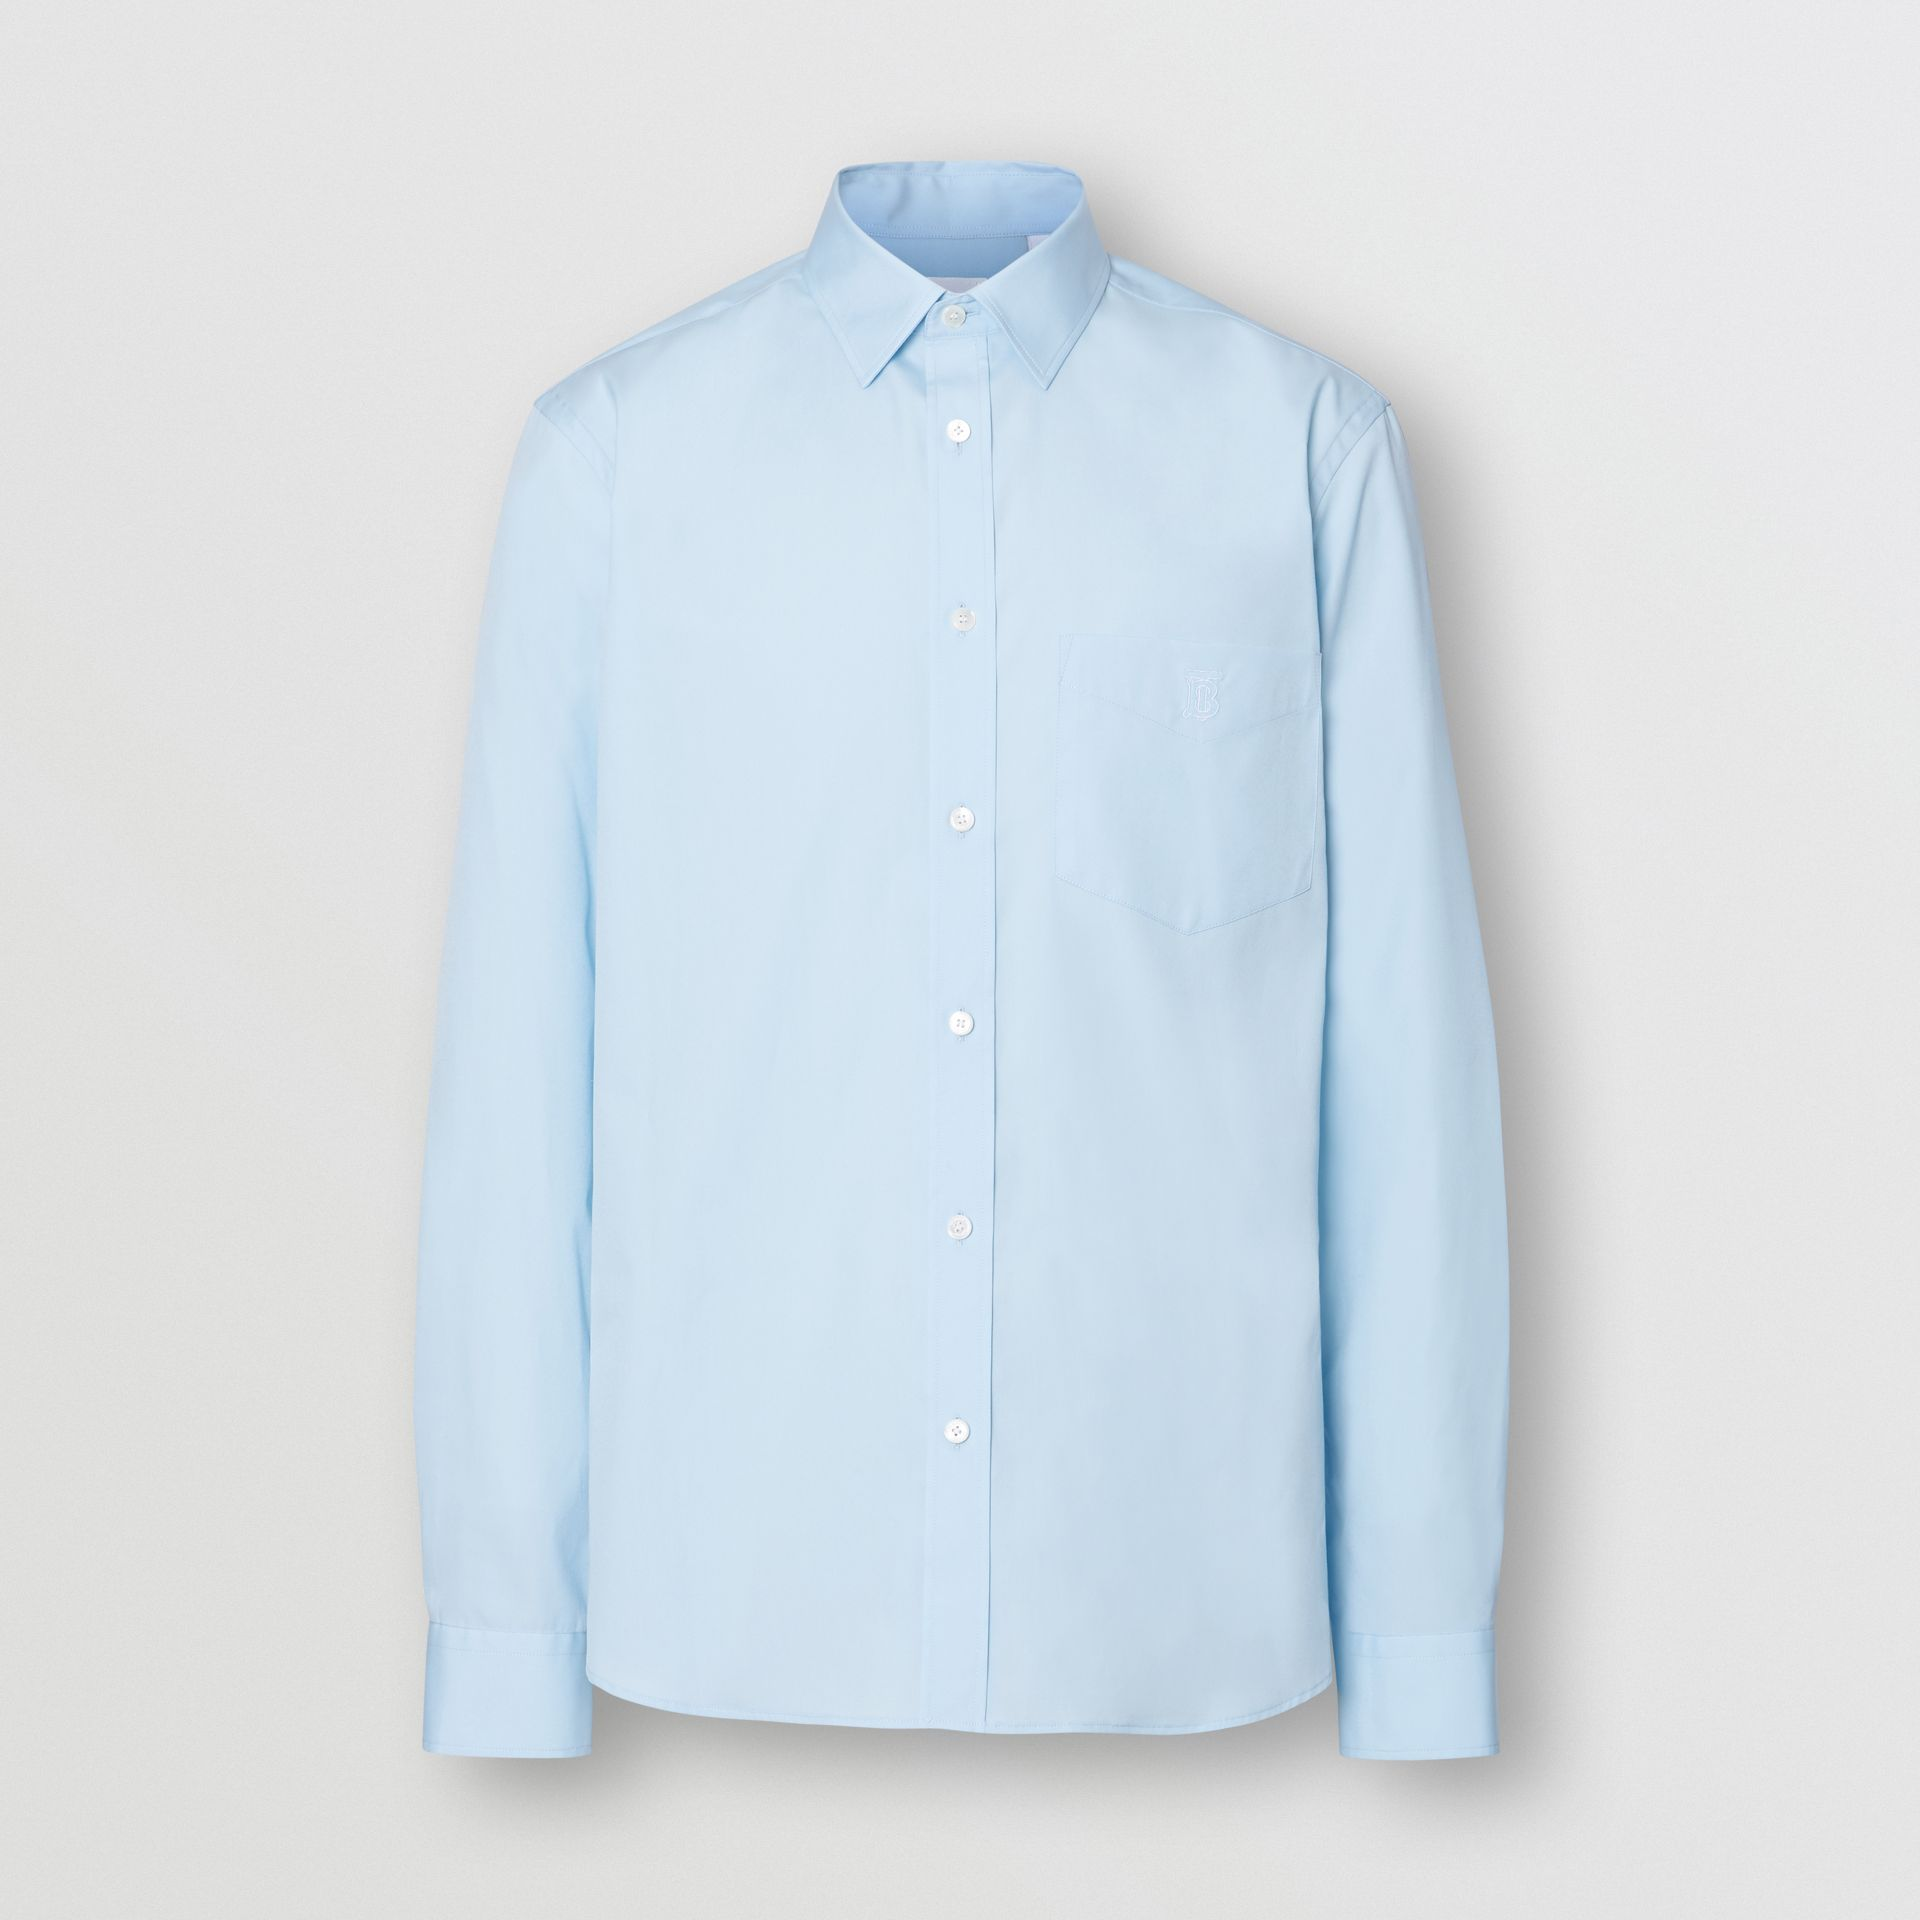 Monogram Motif Stretch Cotton Poplin Shirt in Pale Blue - Men | Burberry Hong Kong S.A.R - gallery image 3